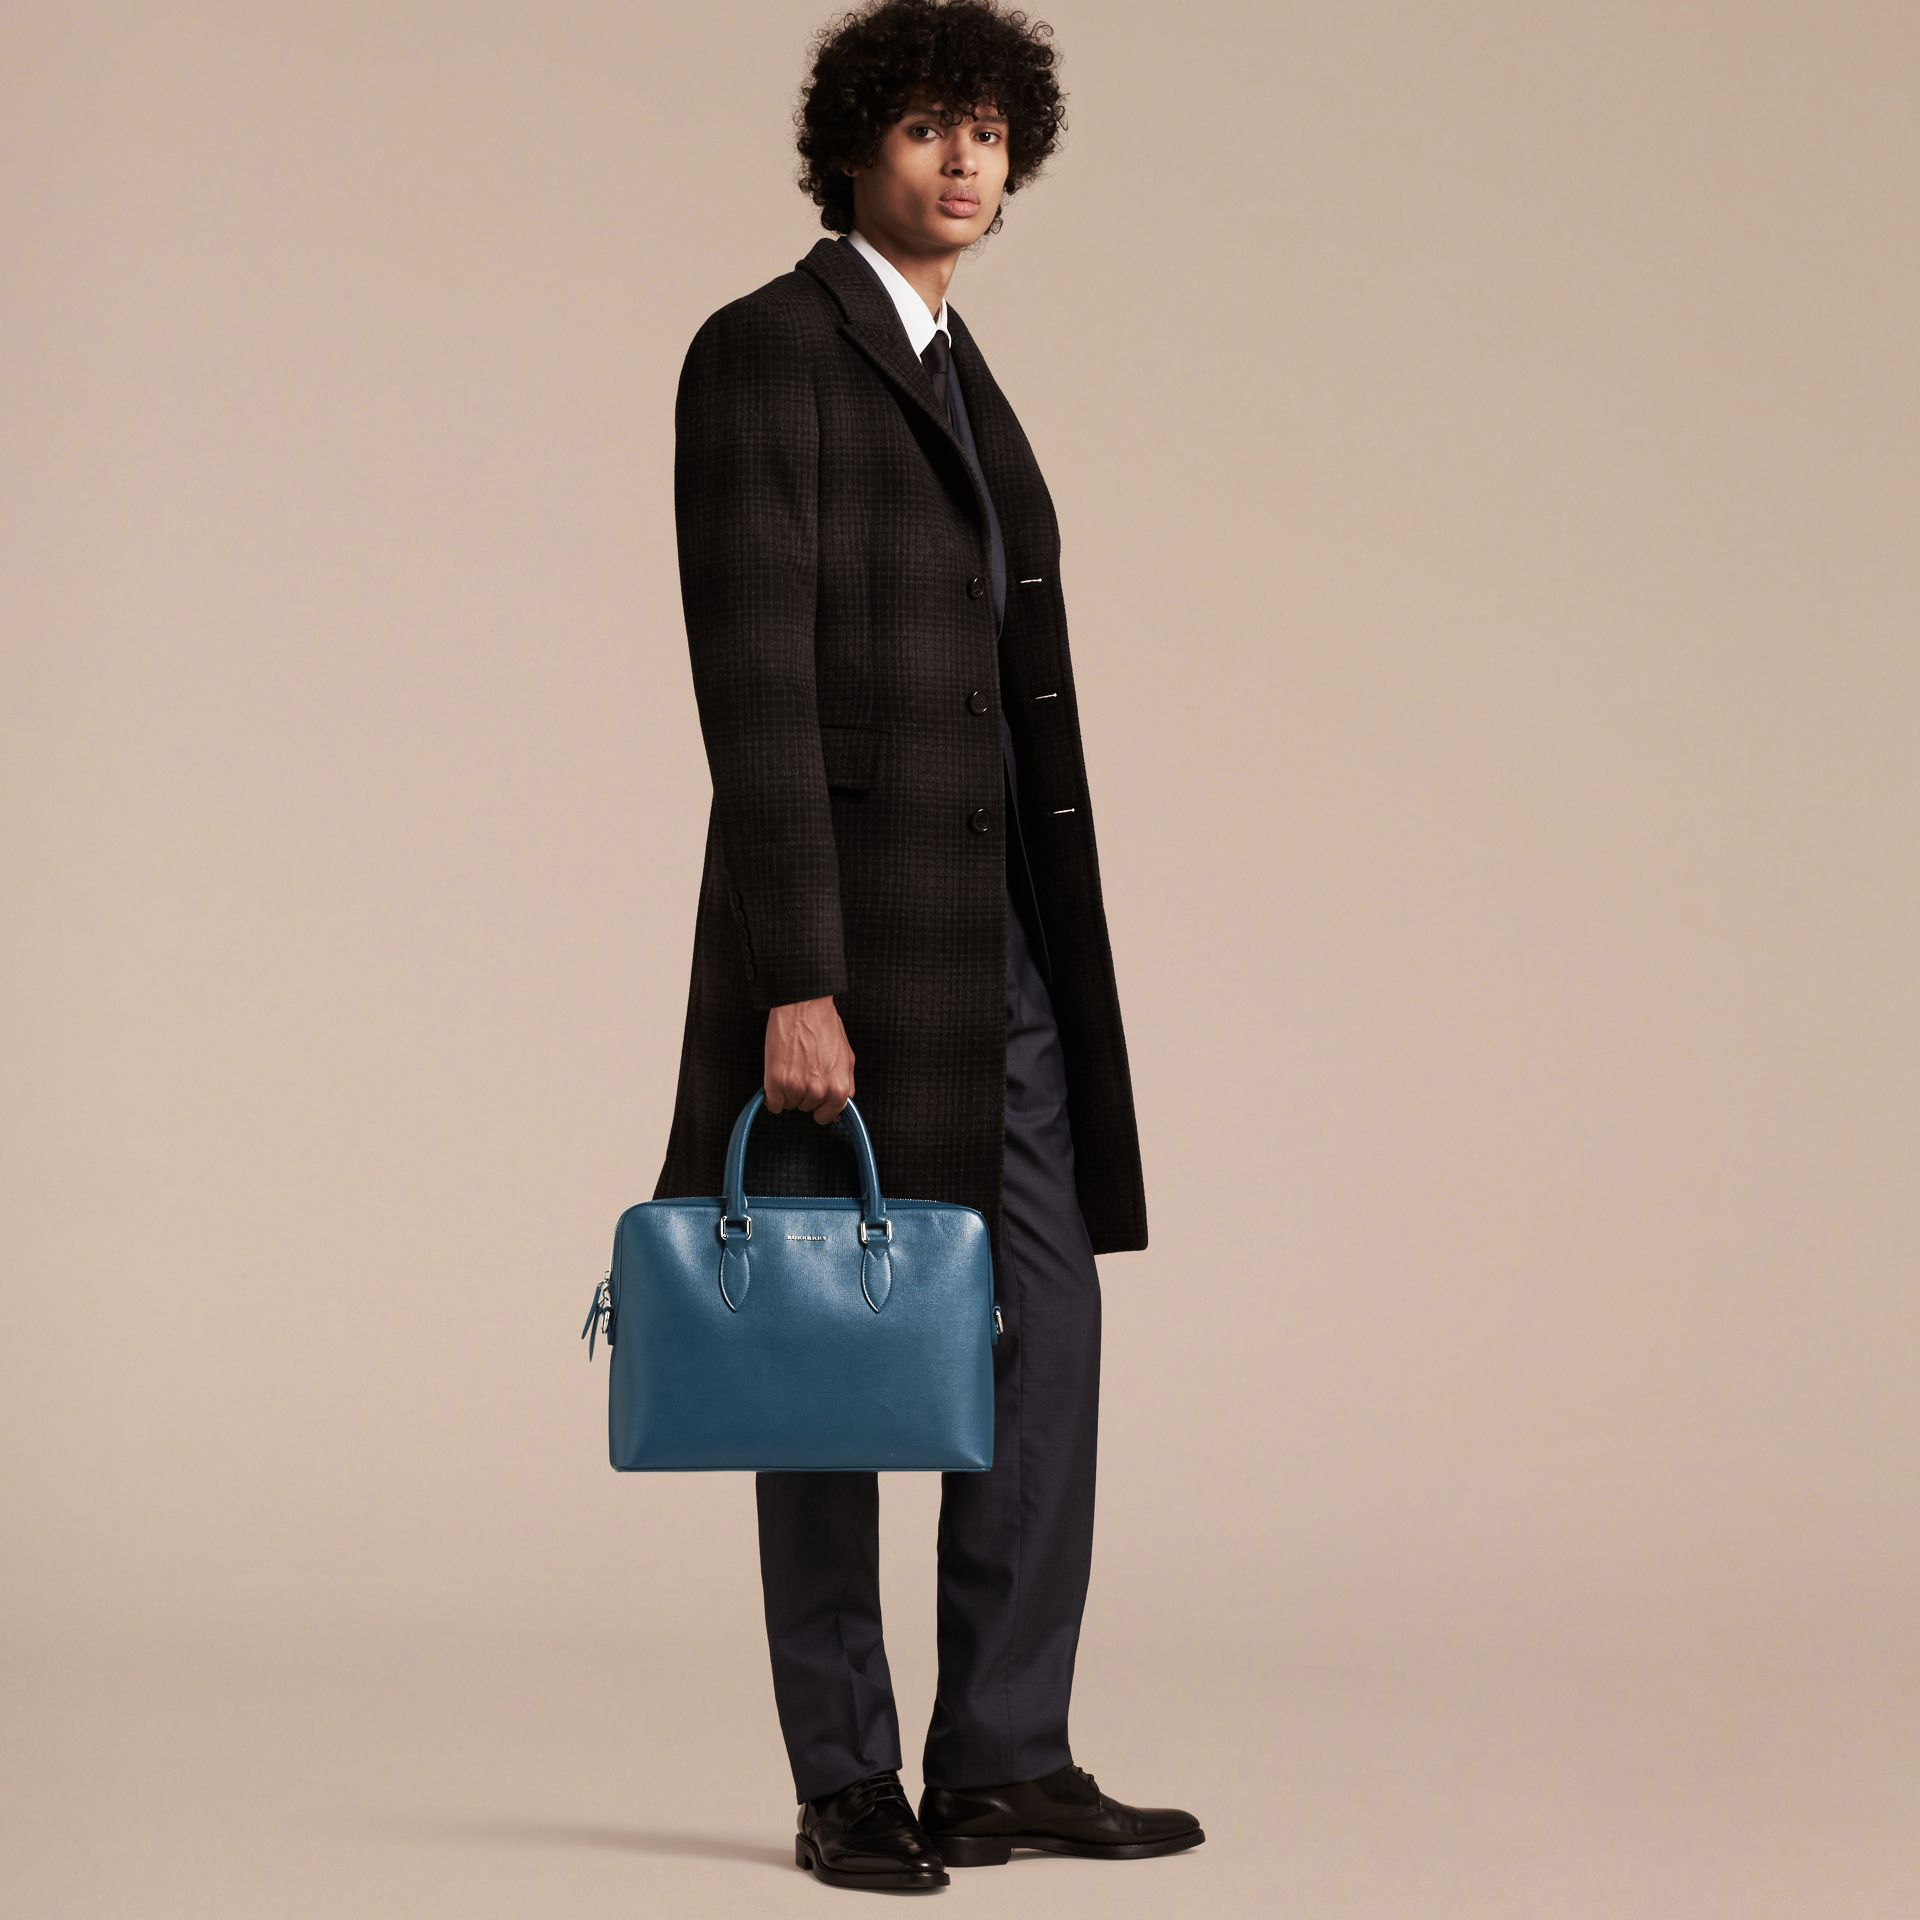 Sac The Barrow fin en cuir London Bleu Minéral - photo de la galerie 3